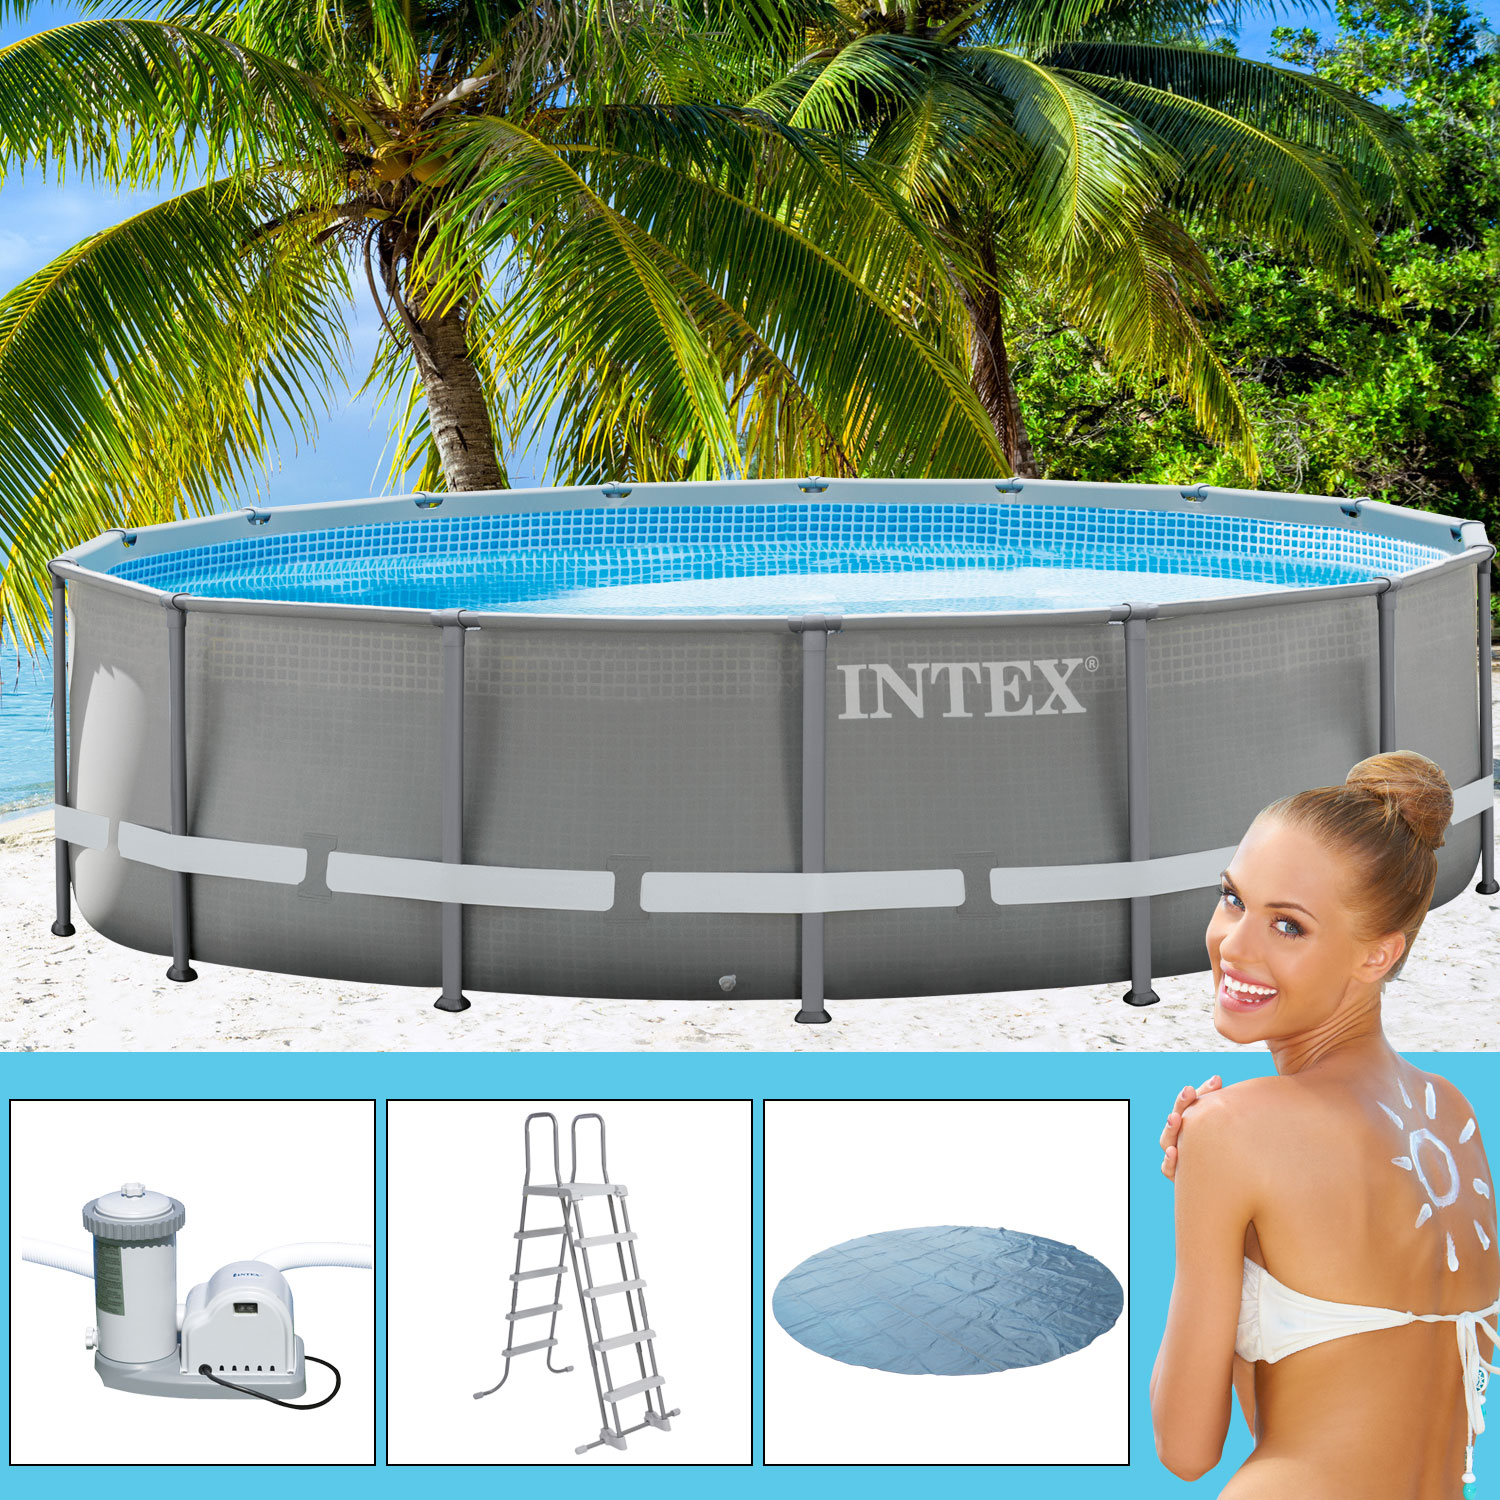 Intex 488x132 cm swimming pool frame mit filterpumpe for Swimmingpool angebote